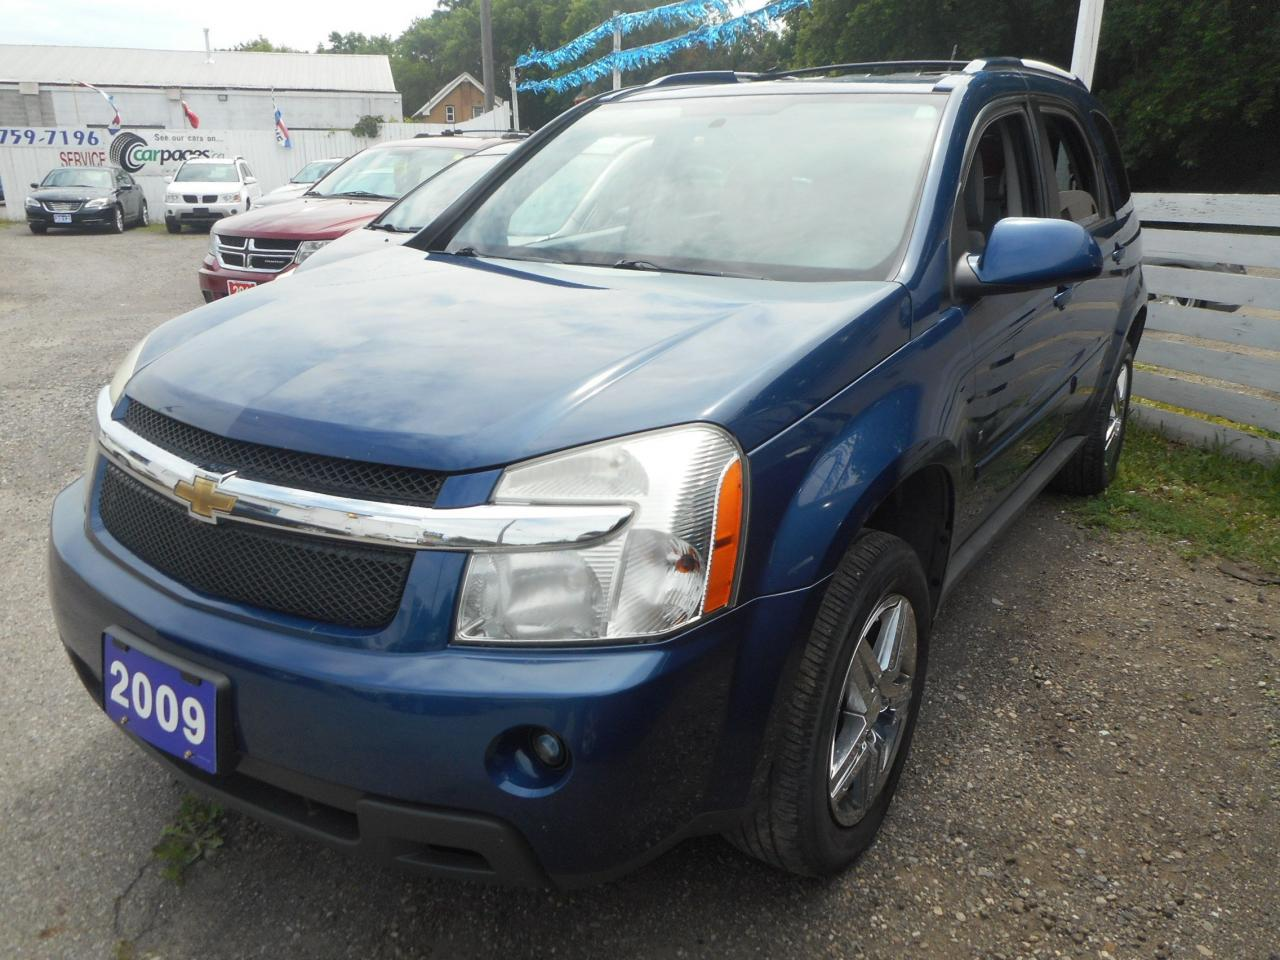 used 2009 chevrolet equinox certified w 6 month warranty for sale in brantford ontario. Black Bedroom Furniture Sets. Home Design Ideas